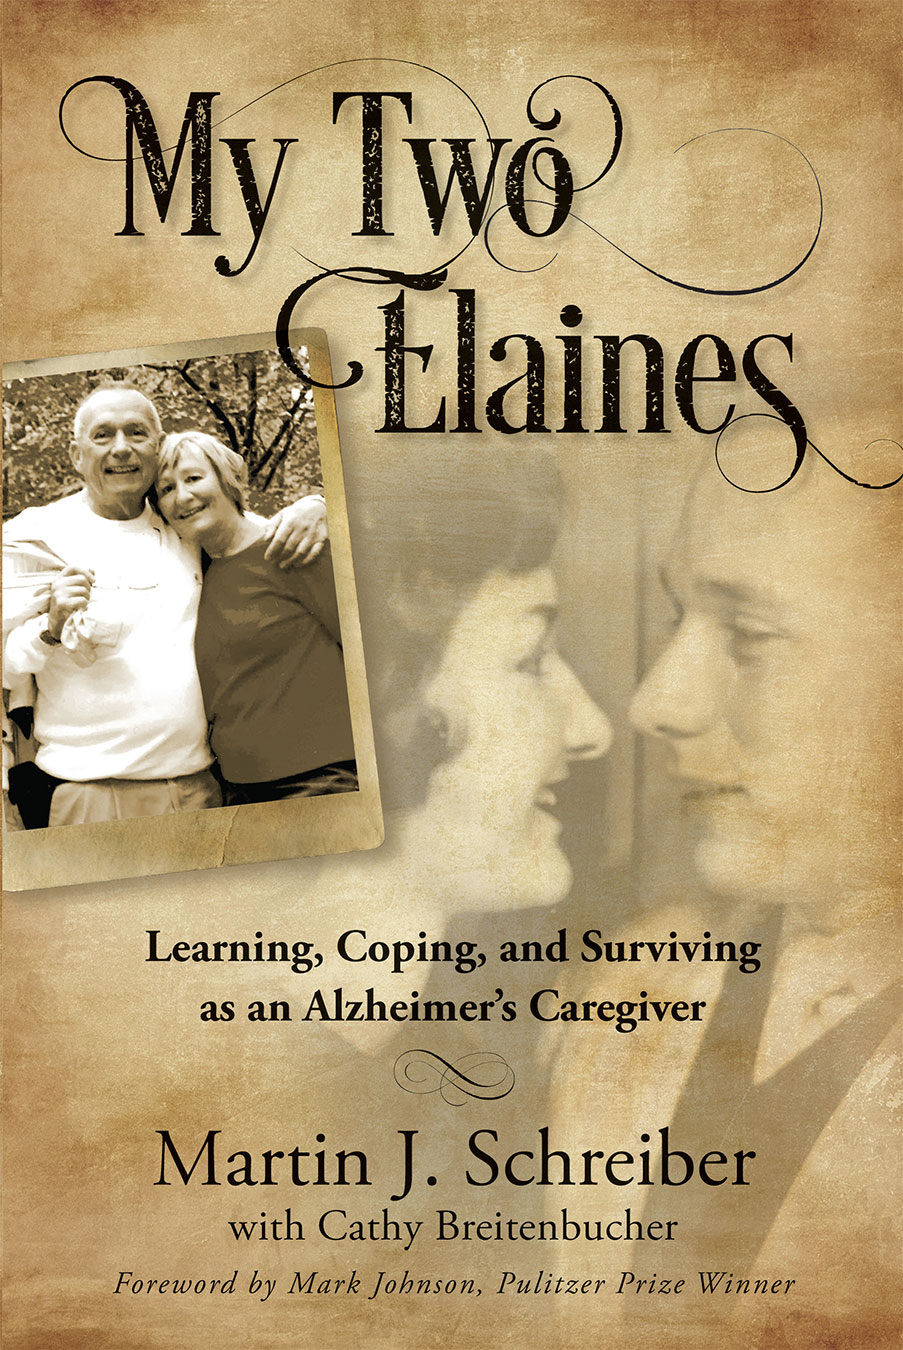 """""""My Two Elaine's""""Learning, Coping and Surviving as an Alzheimer's Caregiver. By Martin J. Schreiber"""